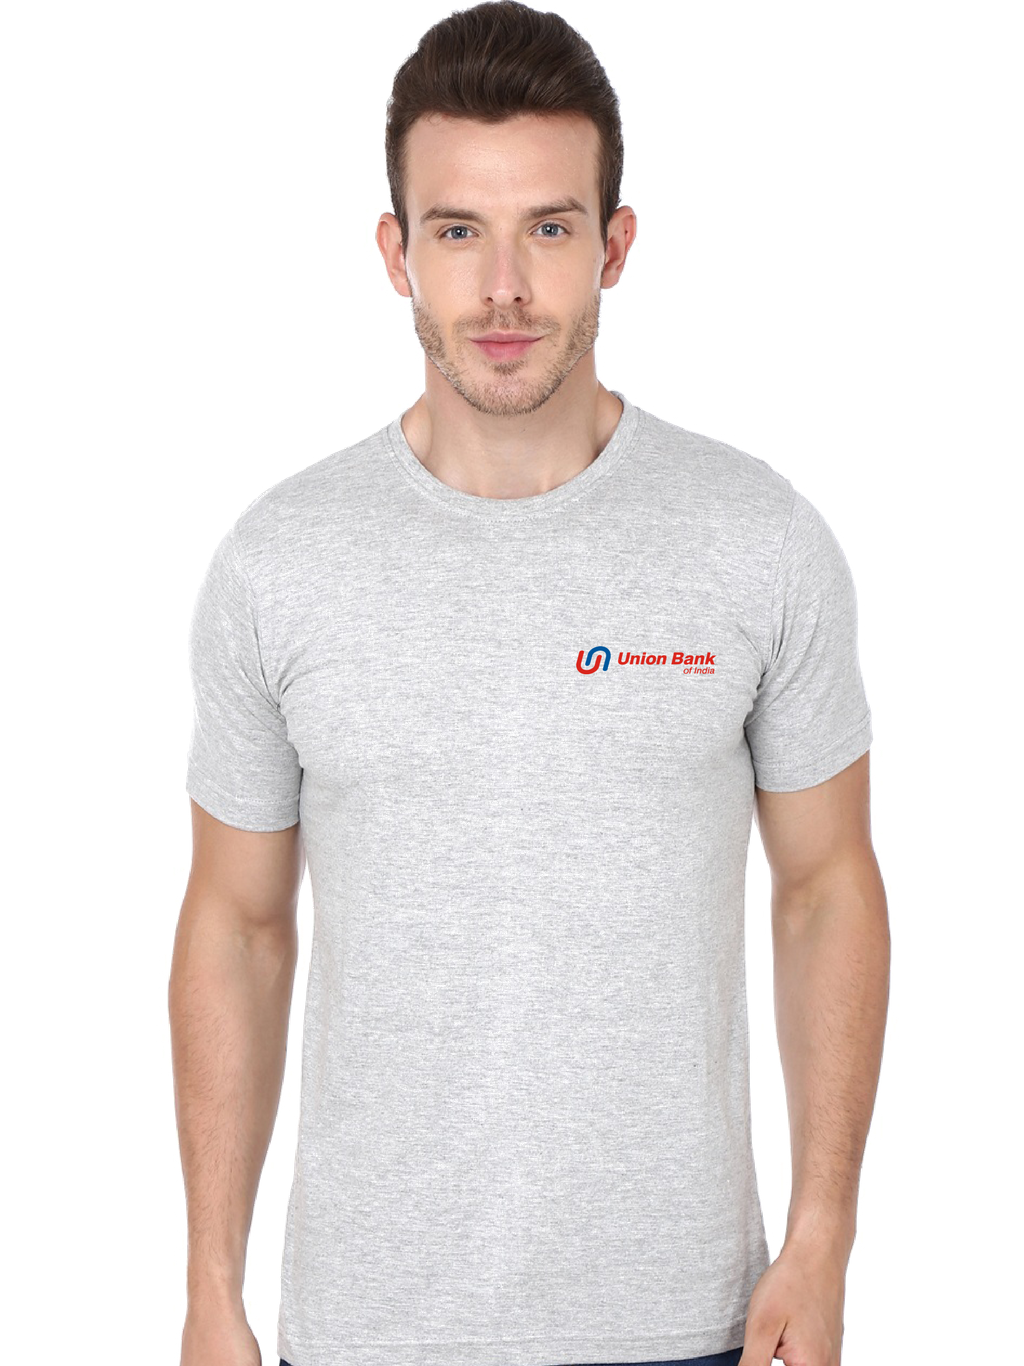 UBI Round Neck T-shirt